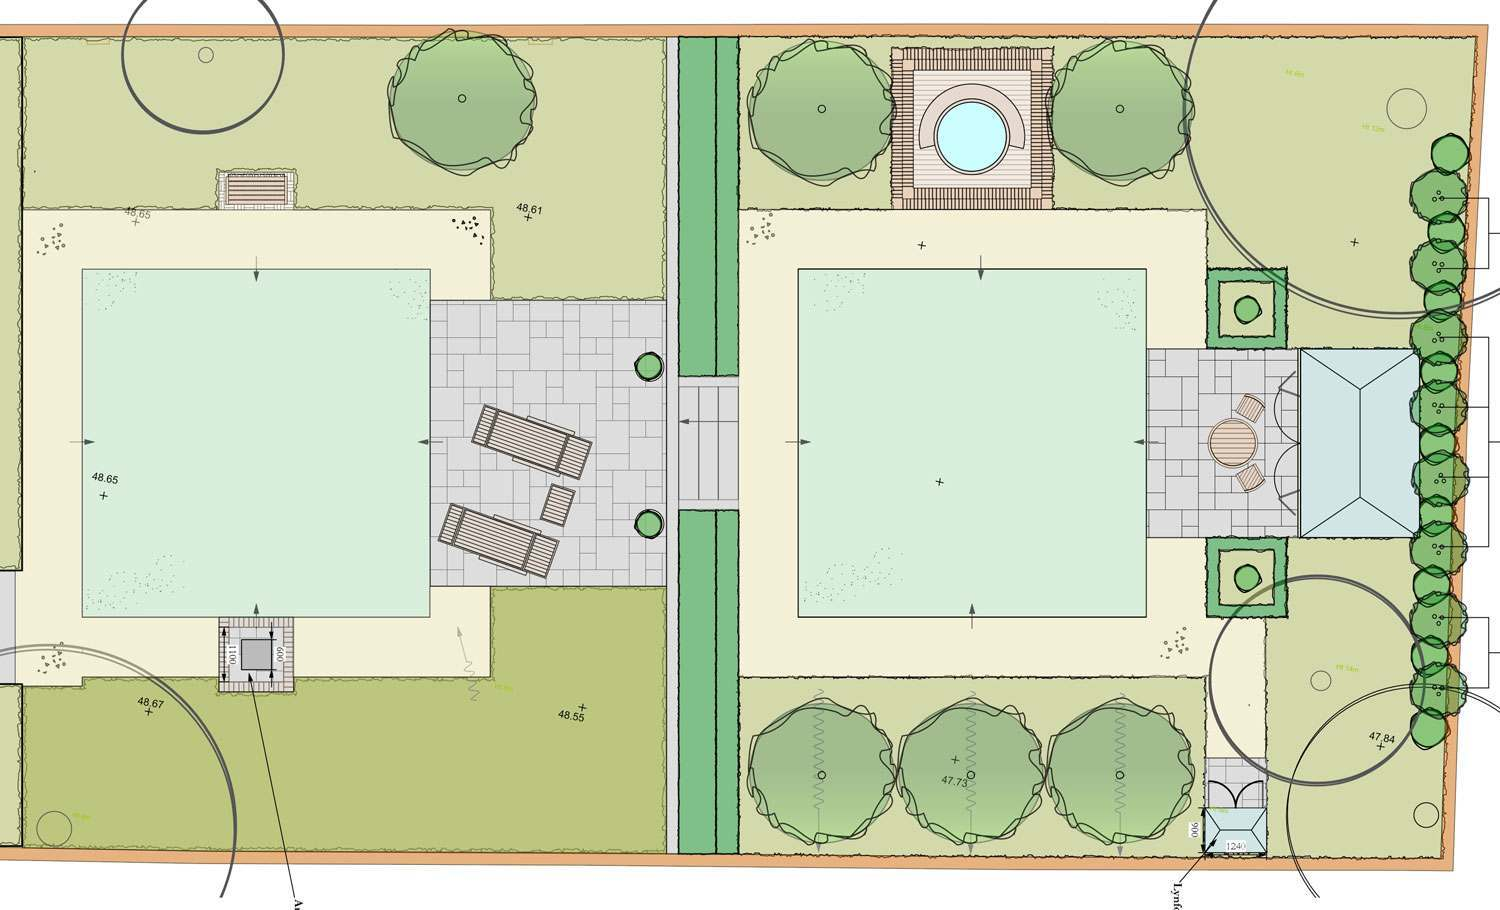 Stage 2: Concept Plan